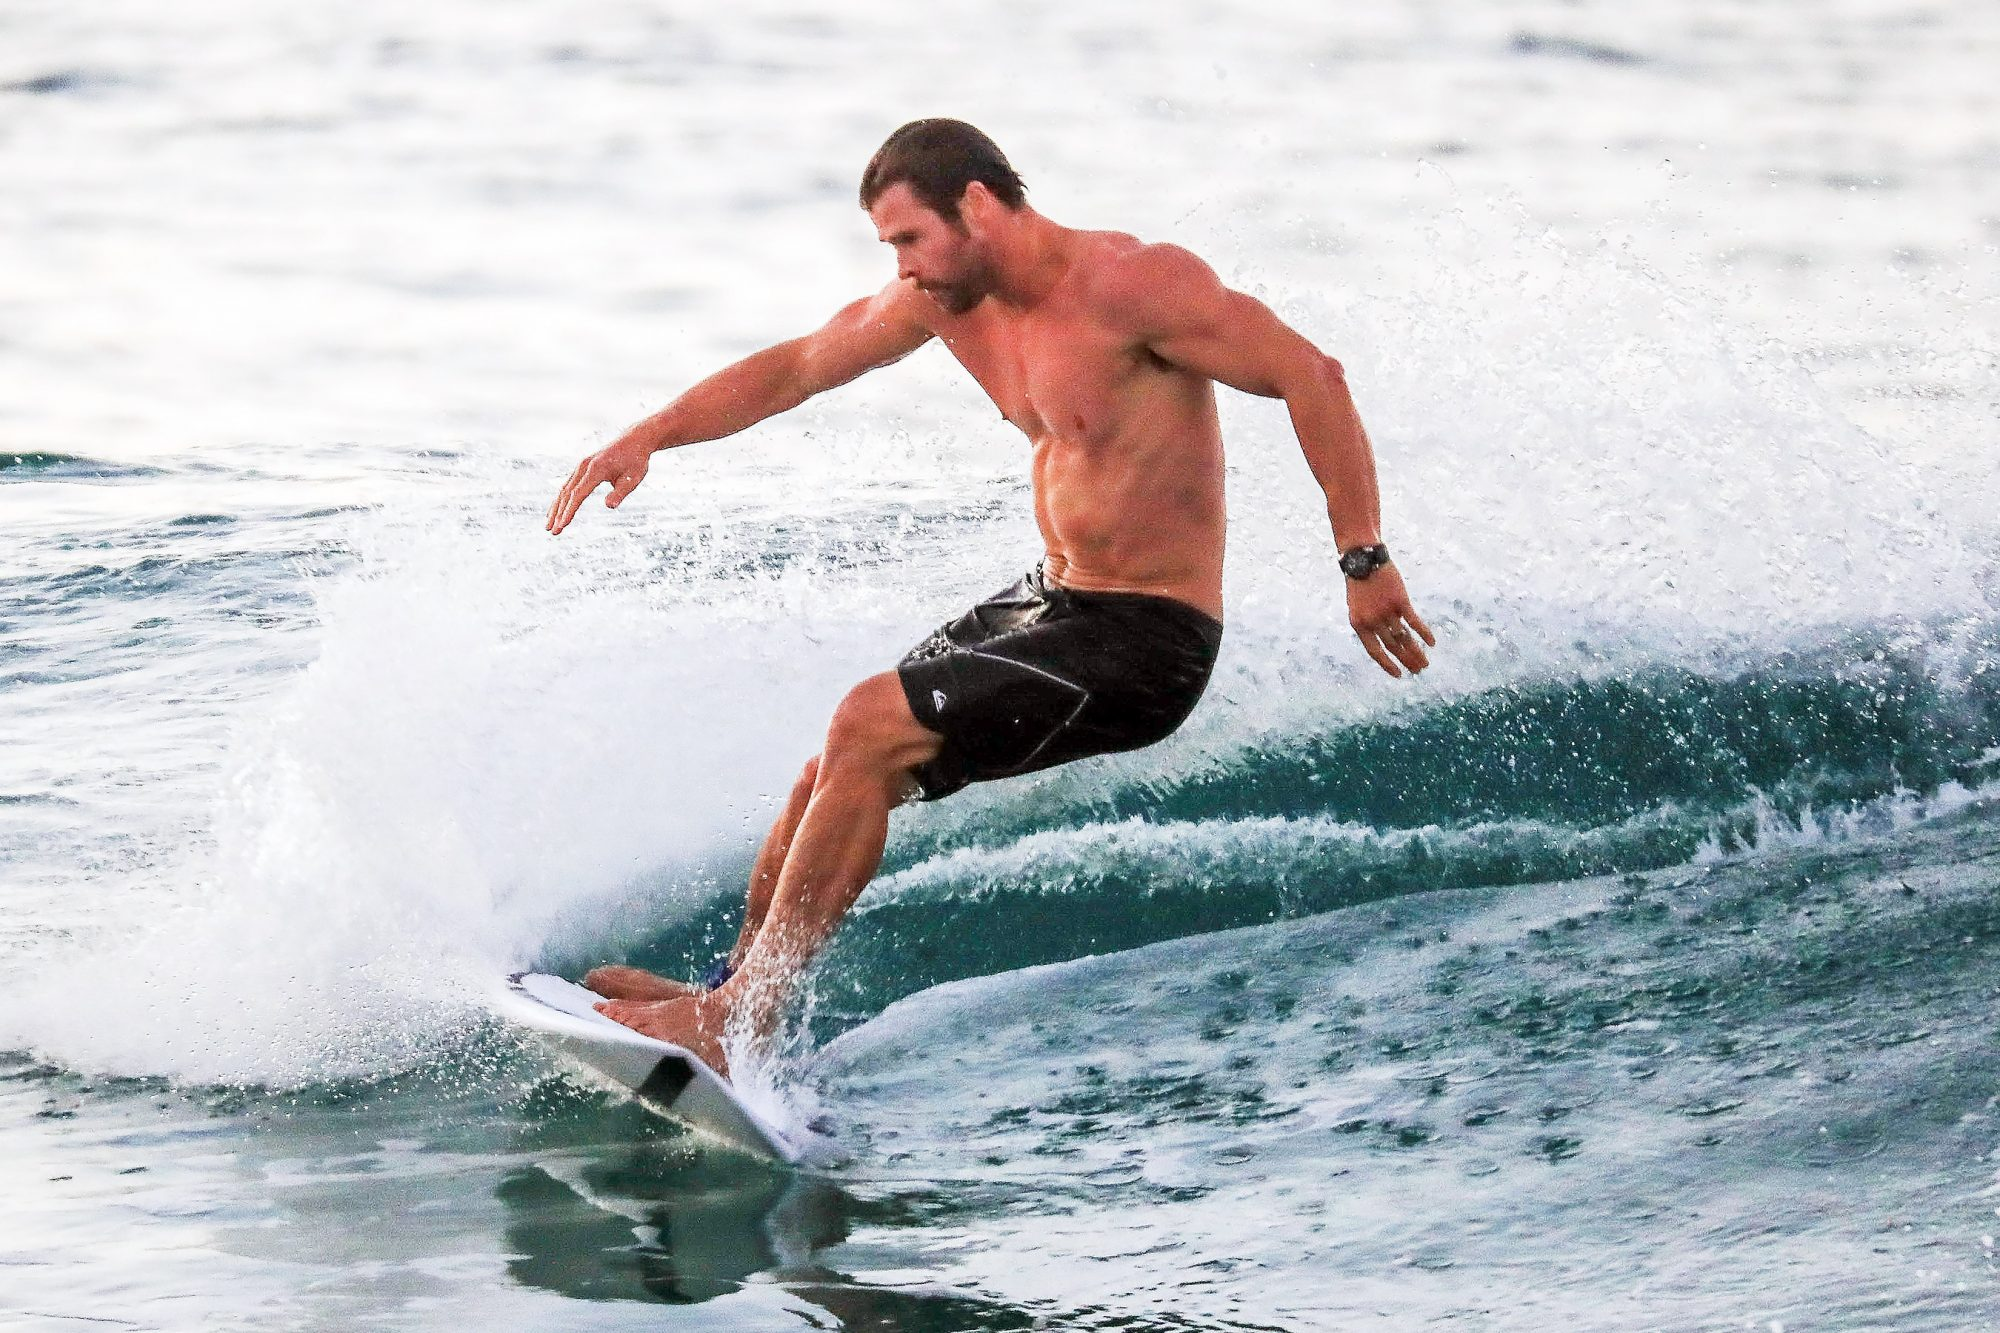 EXCLUSIVE: *NO MAIL ONLINE* Chris Hemsworth enjoys an early evening surf in his hometown of Byron Bay, Australia